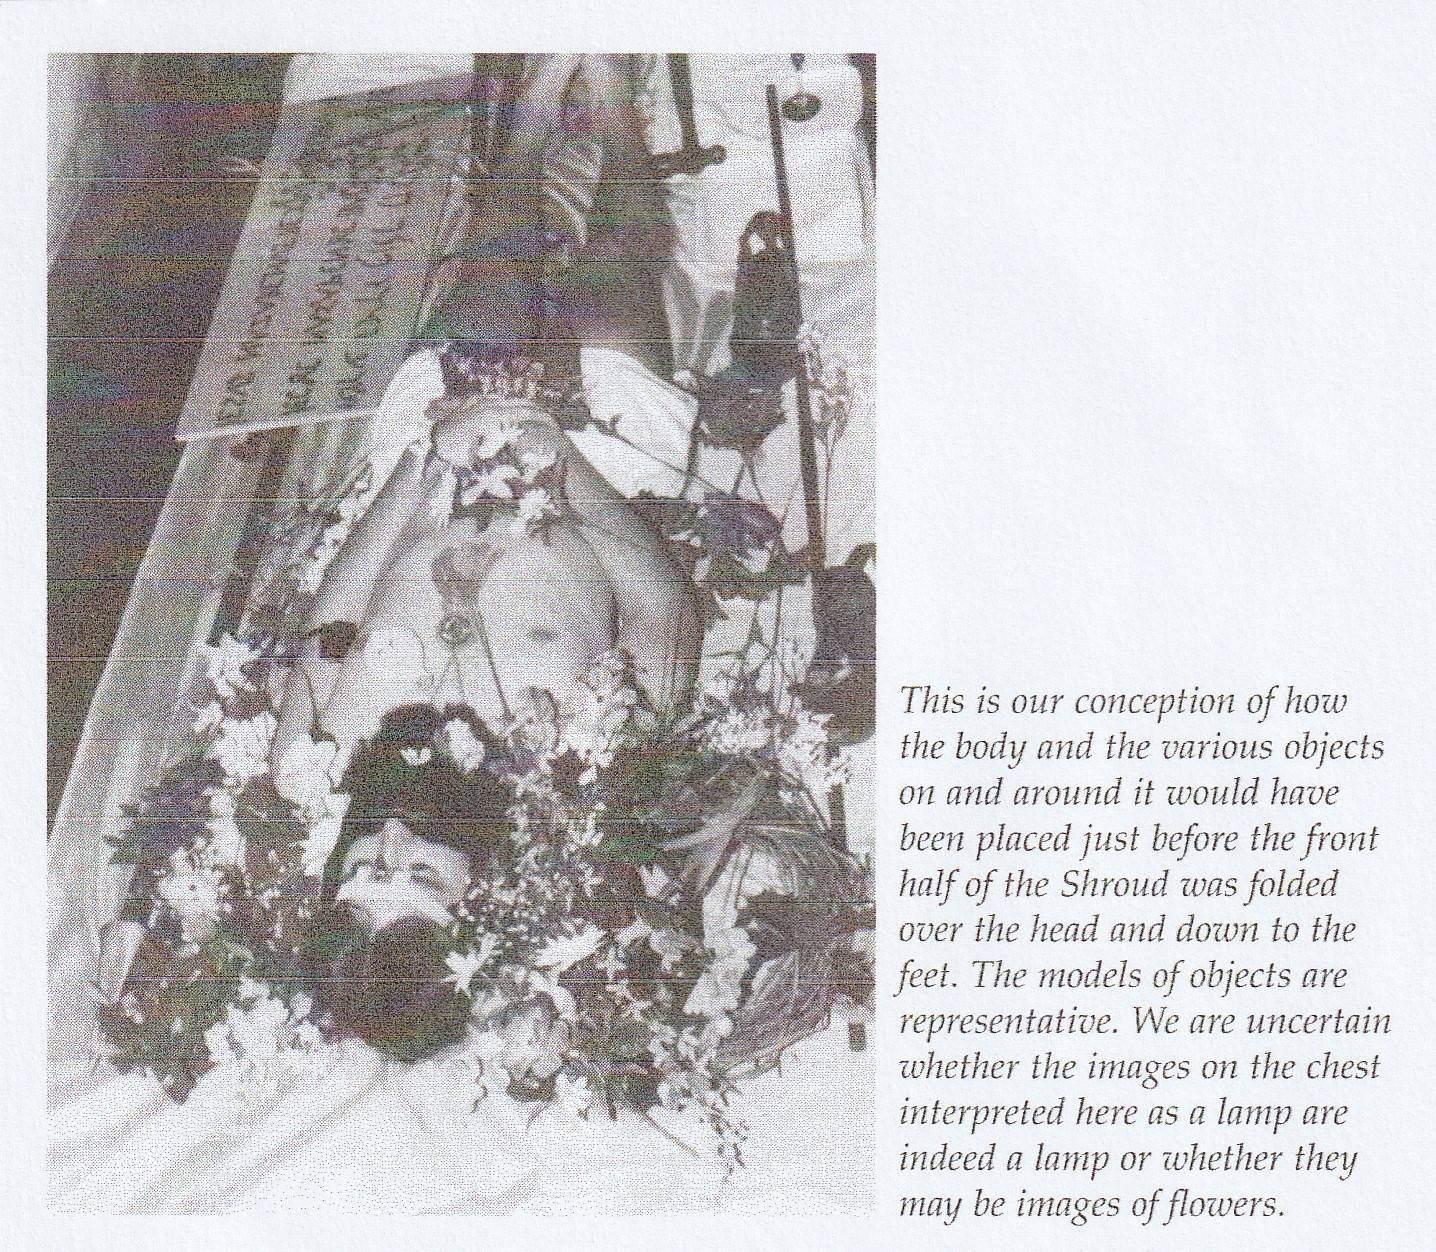 Photo 2. Body Shroud with flowers according to Whangers